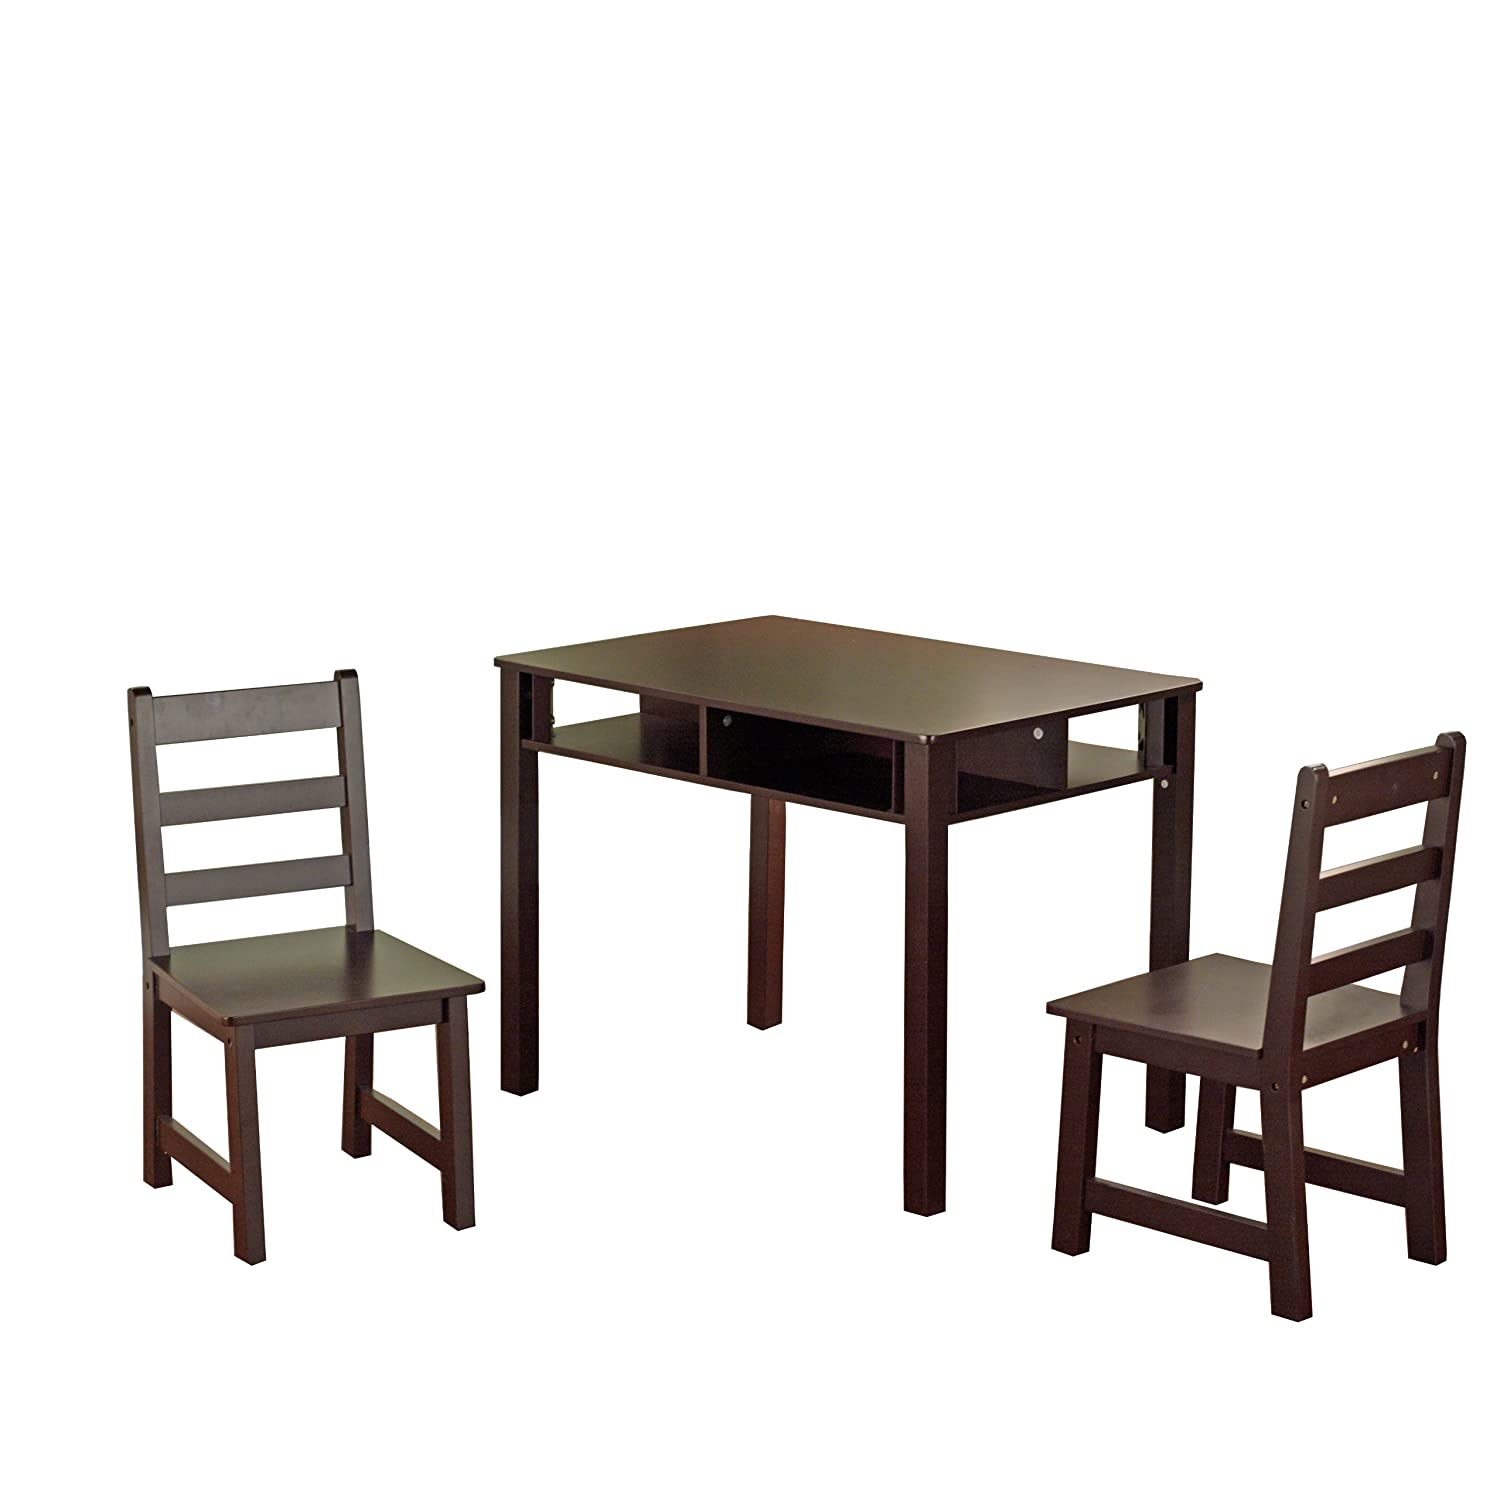 Kid table and chairs wood - Amazon Com Target Marketing Systems 3 Piece Wooden Kid S Table Set With 2 Chairs And 1 Table With Cubby Holes Espresso Kitchen Dining